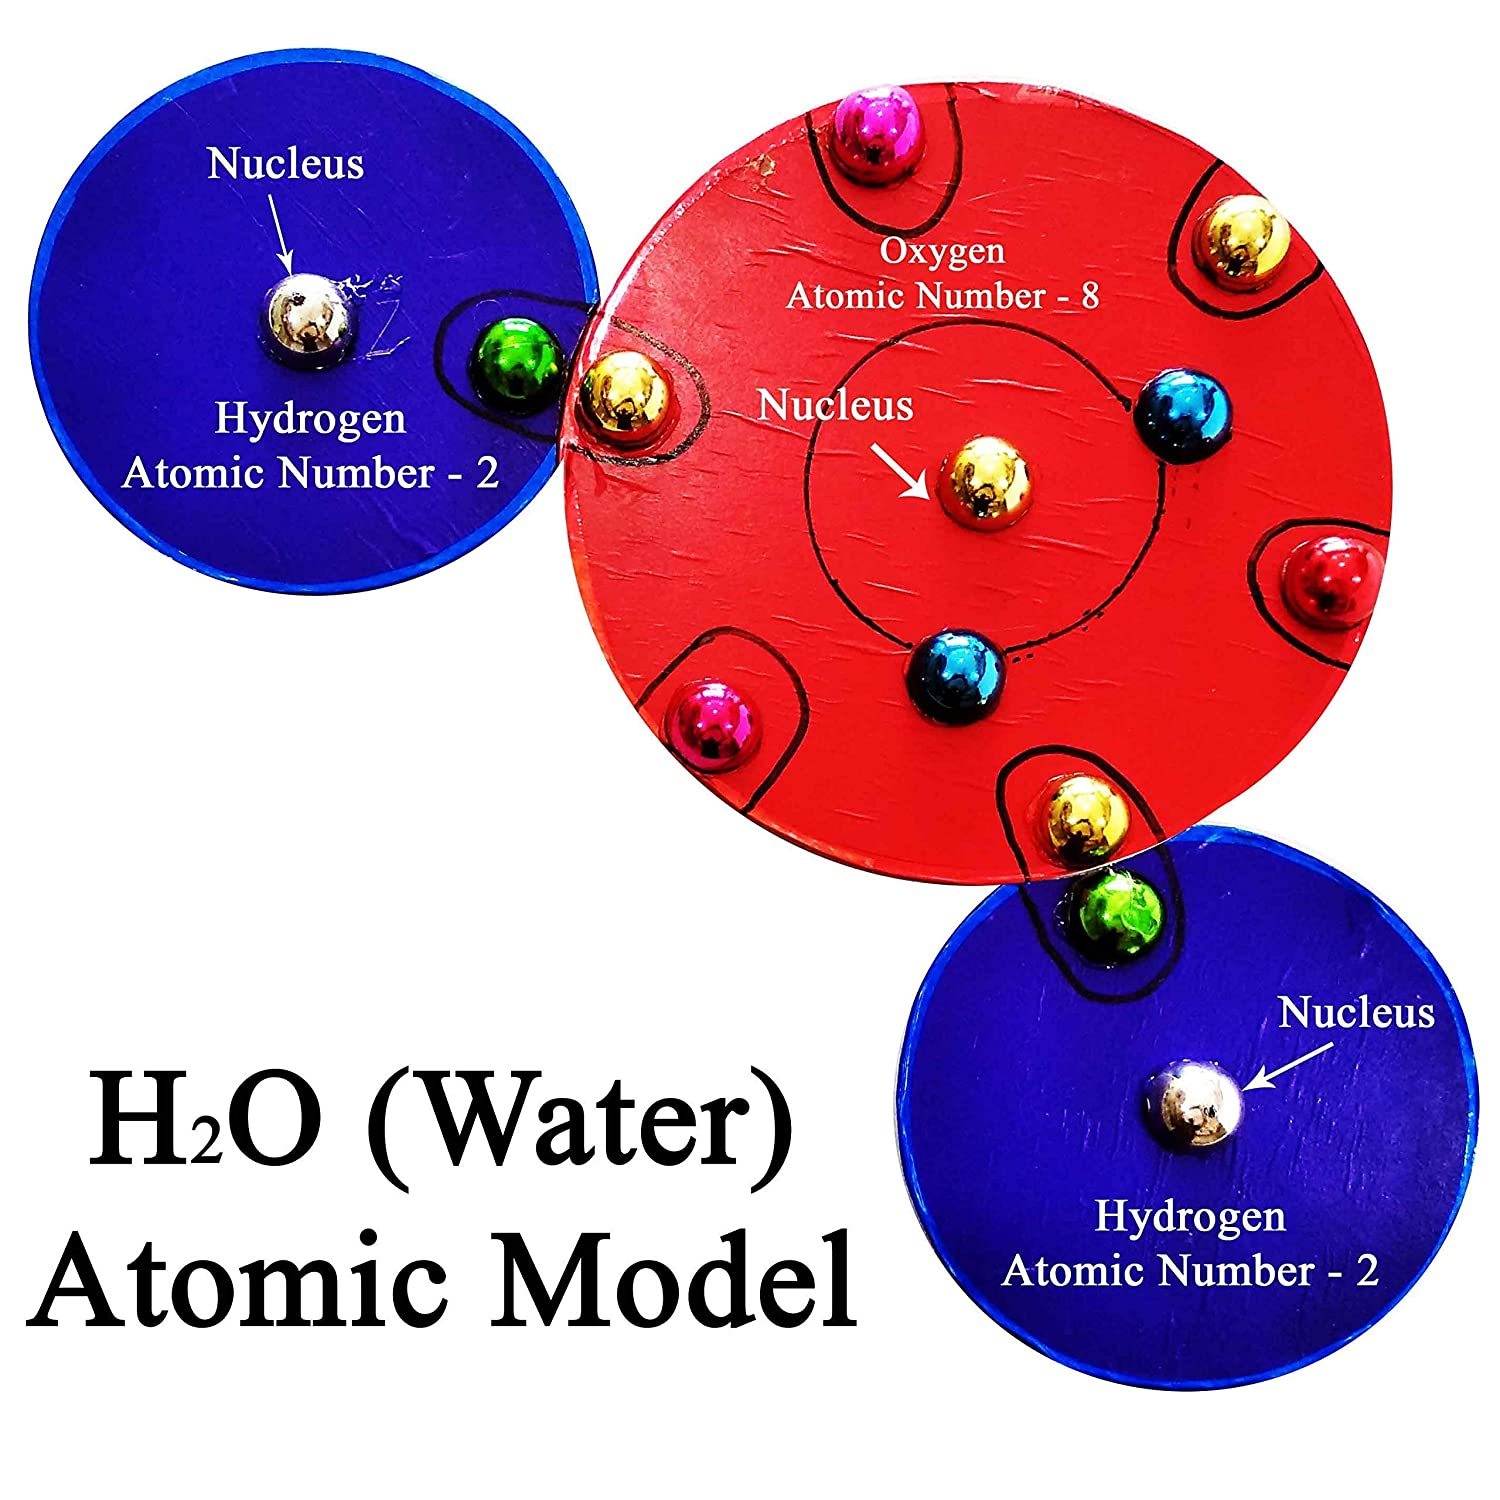 H2o Water Atomic Working Model Office Products Oxygen Atom Diagram Atoms